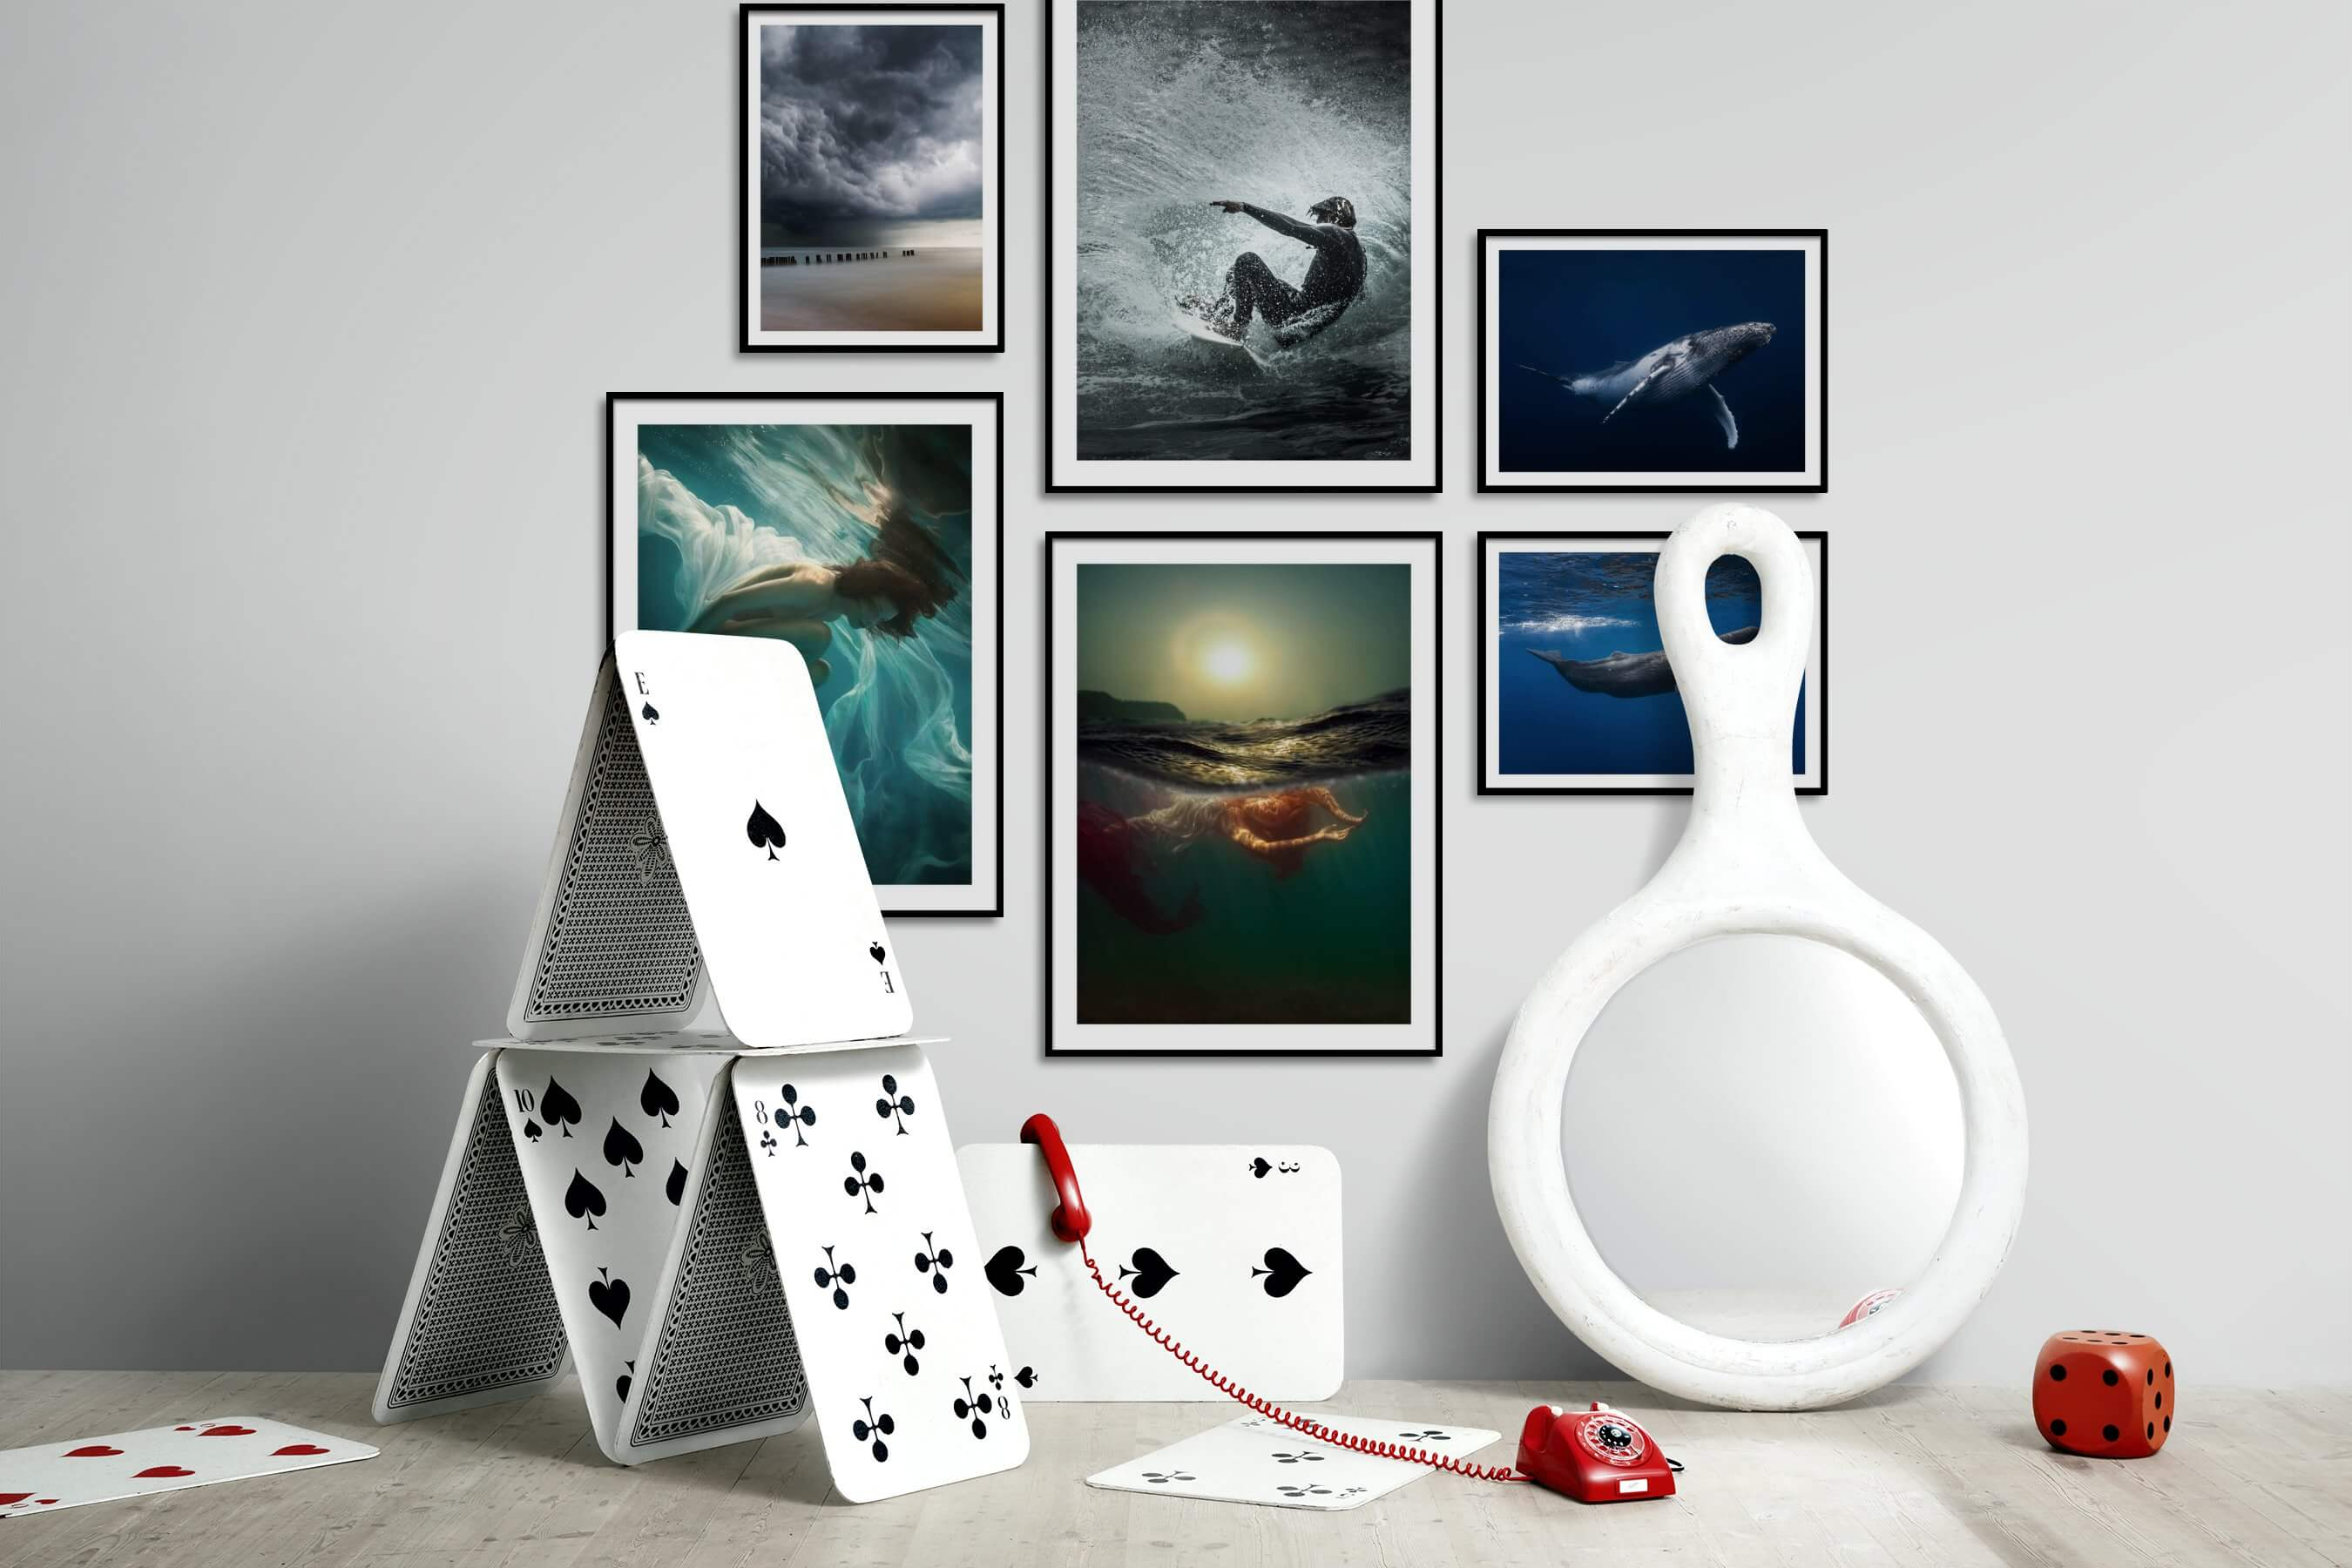 Gallery wall idea with six framed pictures arranged on a wall depicting For the Moderate, Beach & Water, Fashion & Beauty, For the Minimalist, and Animals